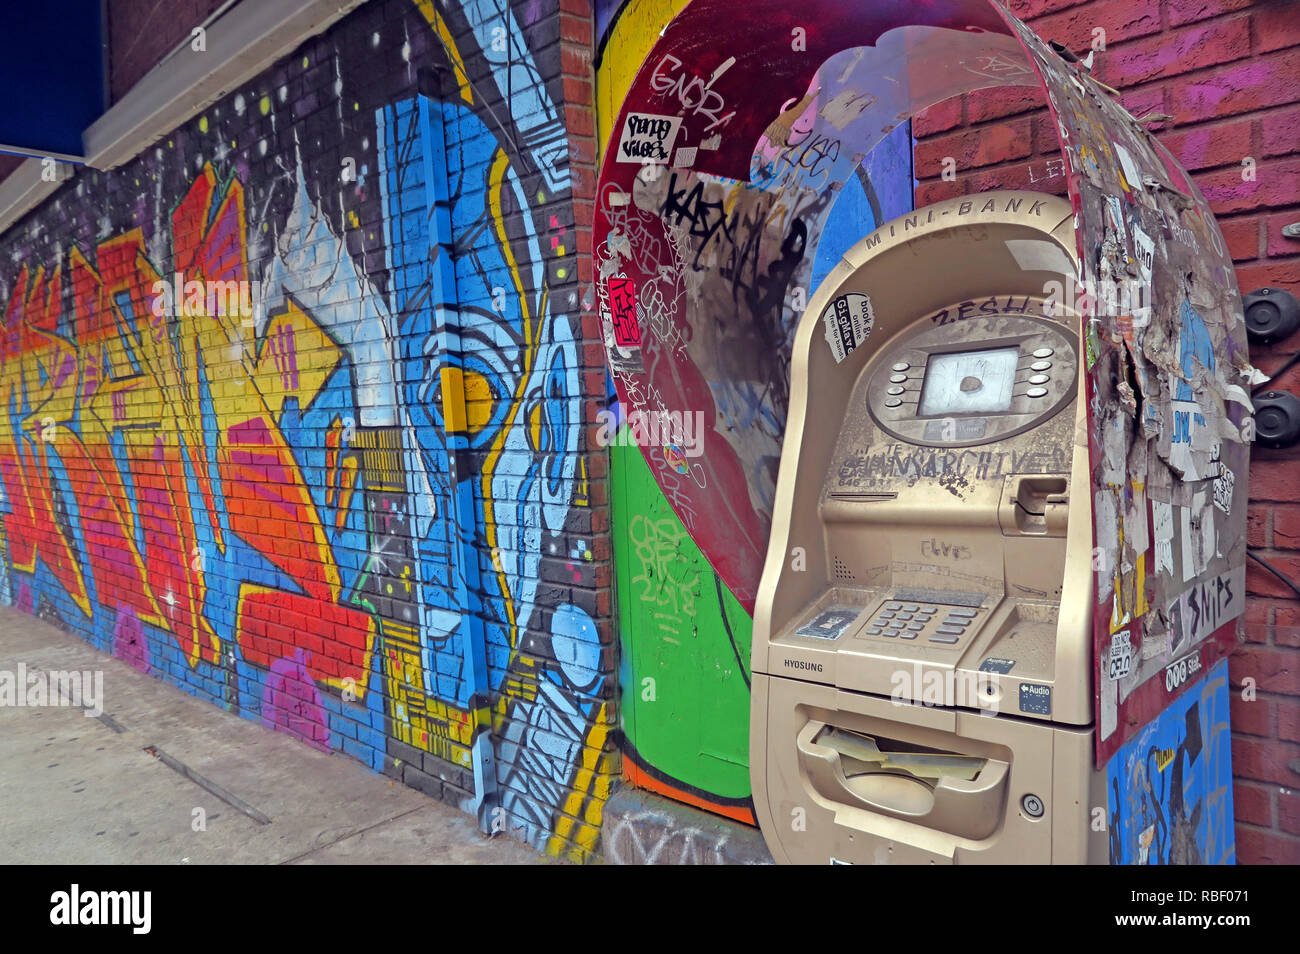 Money and Art, ATM at East 7th Street, East Village, Manhattan, New York, NY, USA Stock Photo